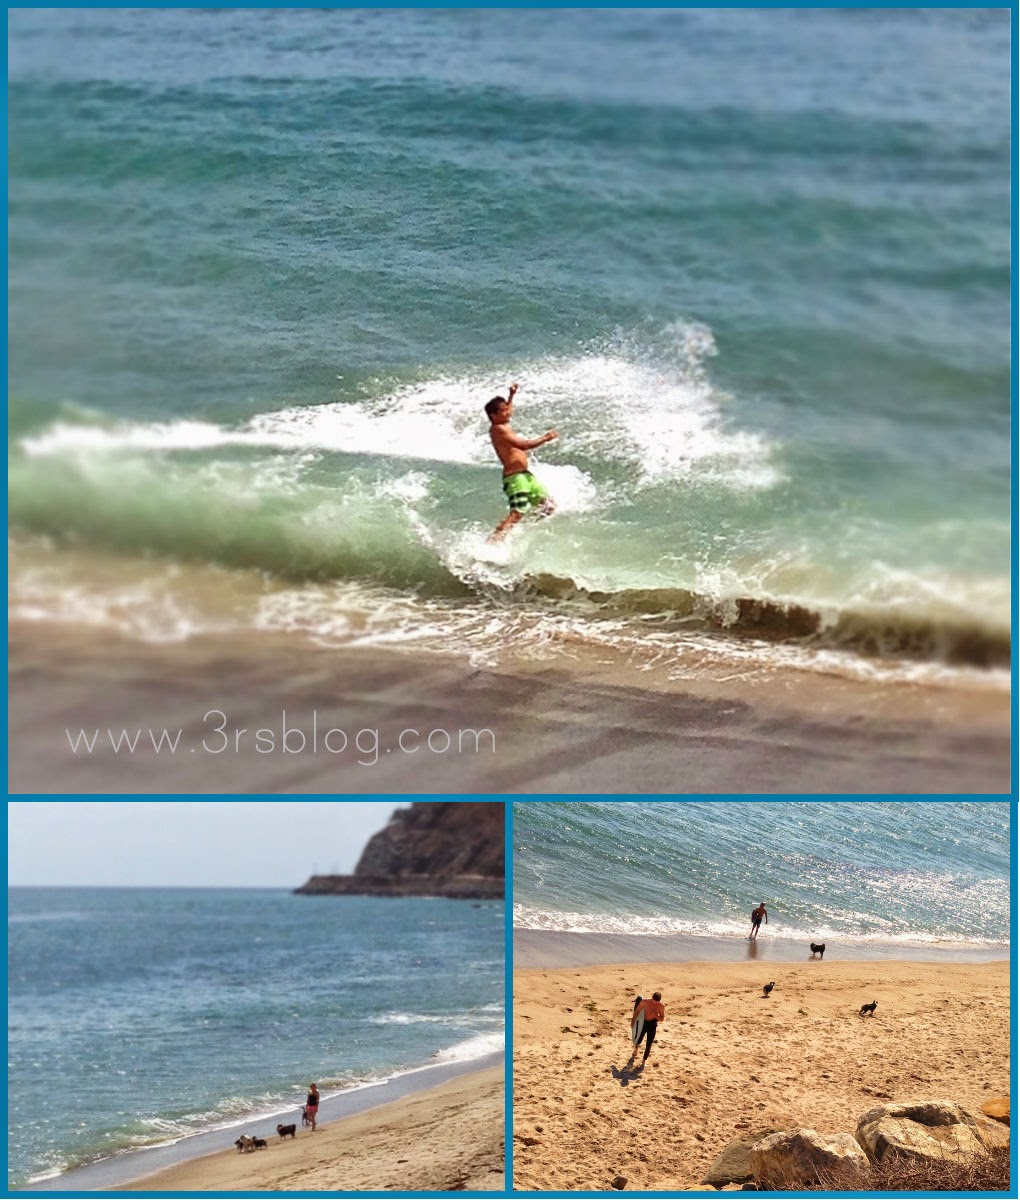 Beach collage July 2014 on The 3Rs Blog